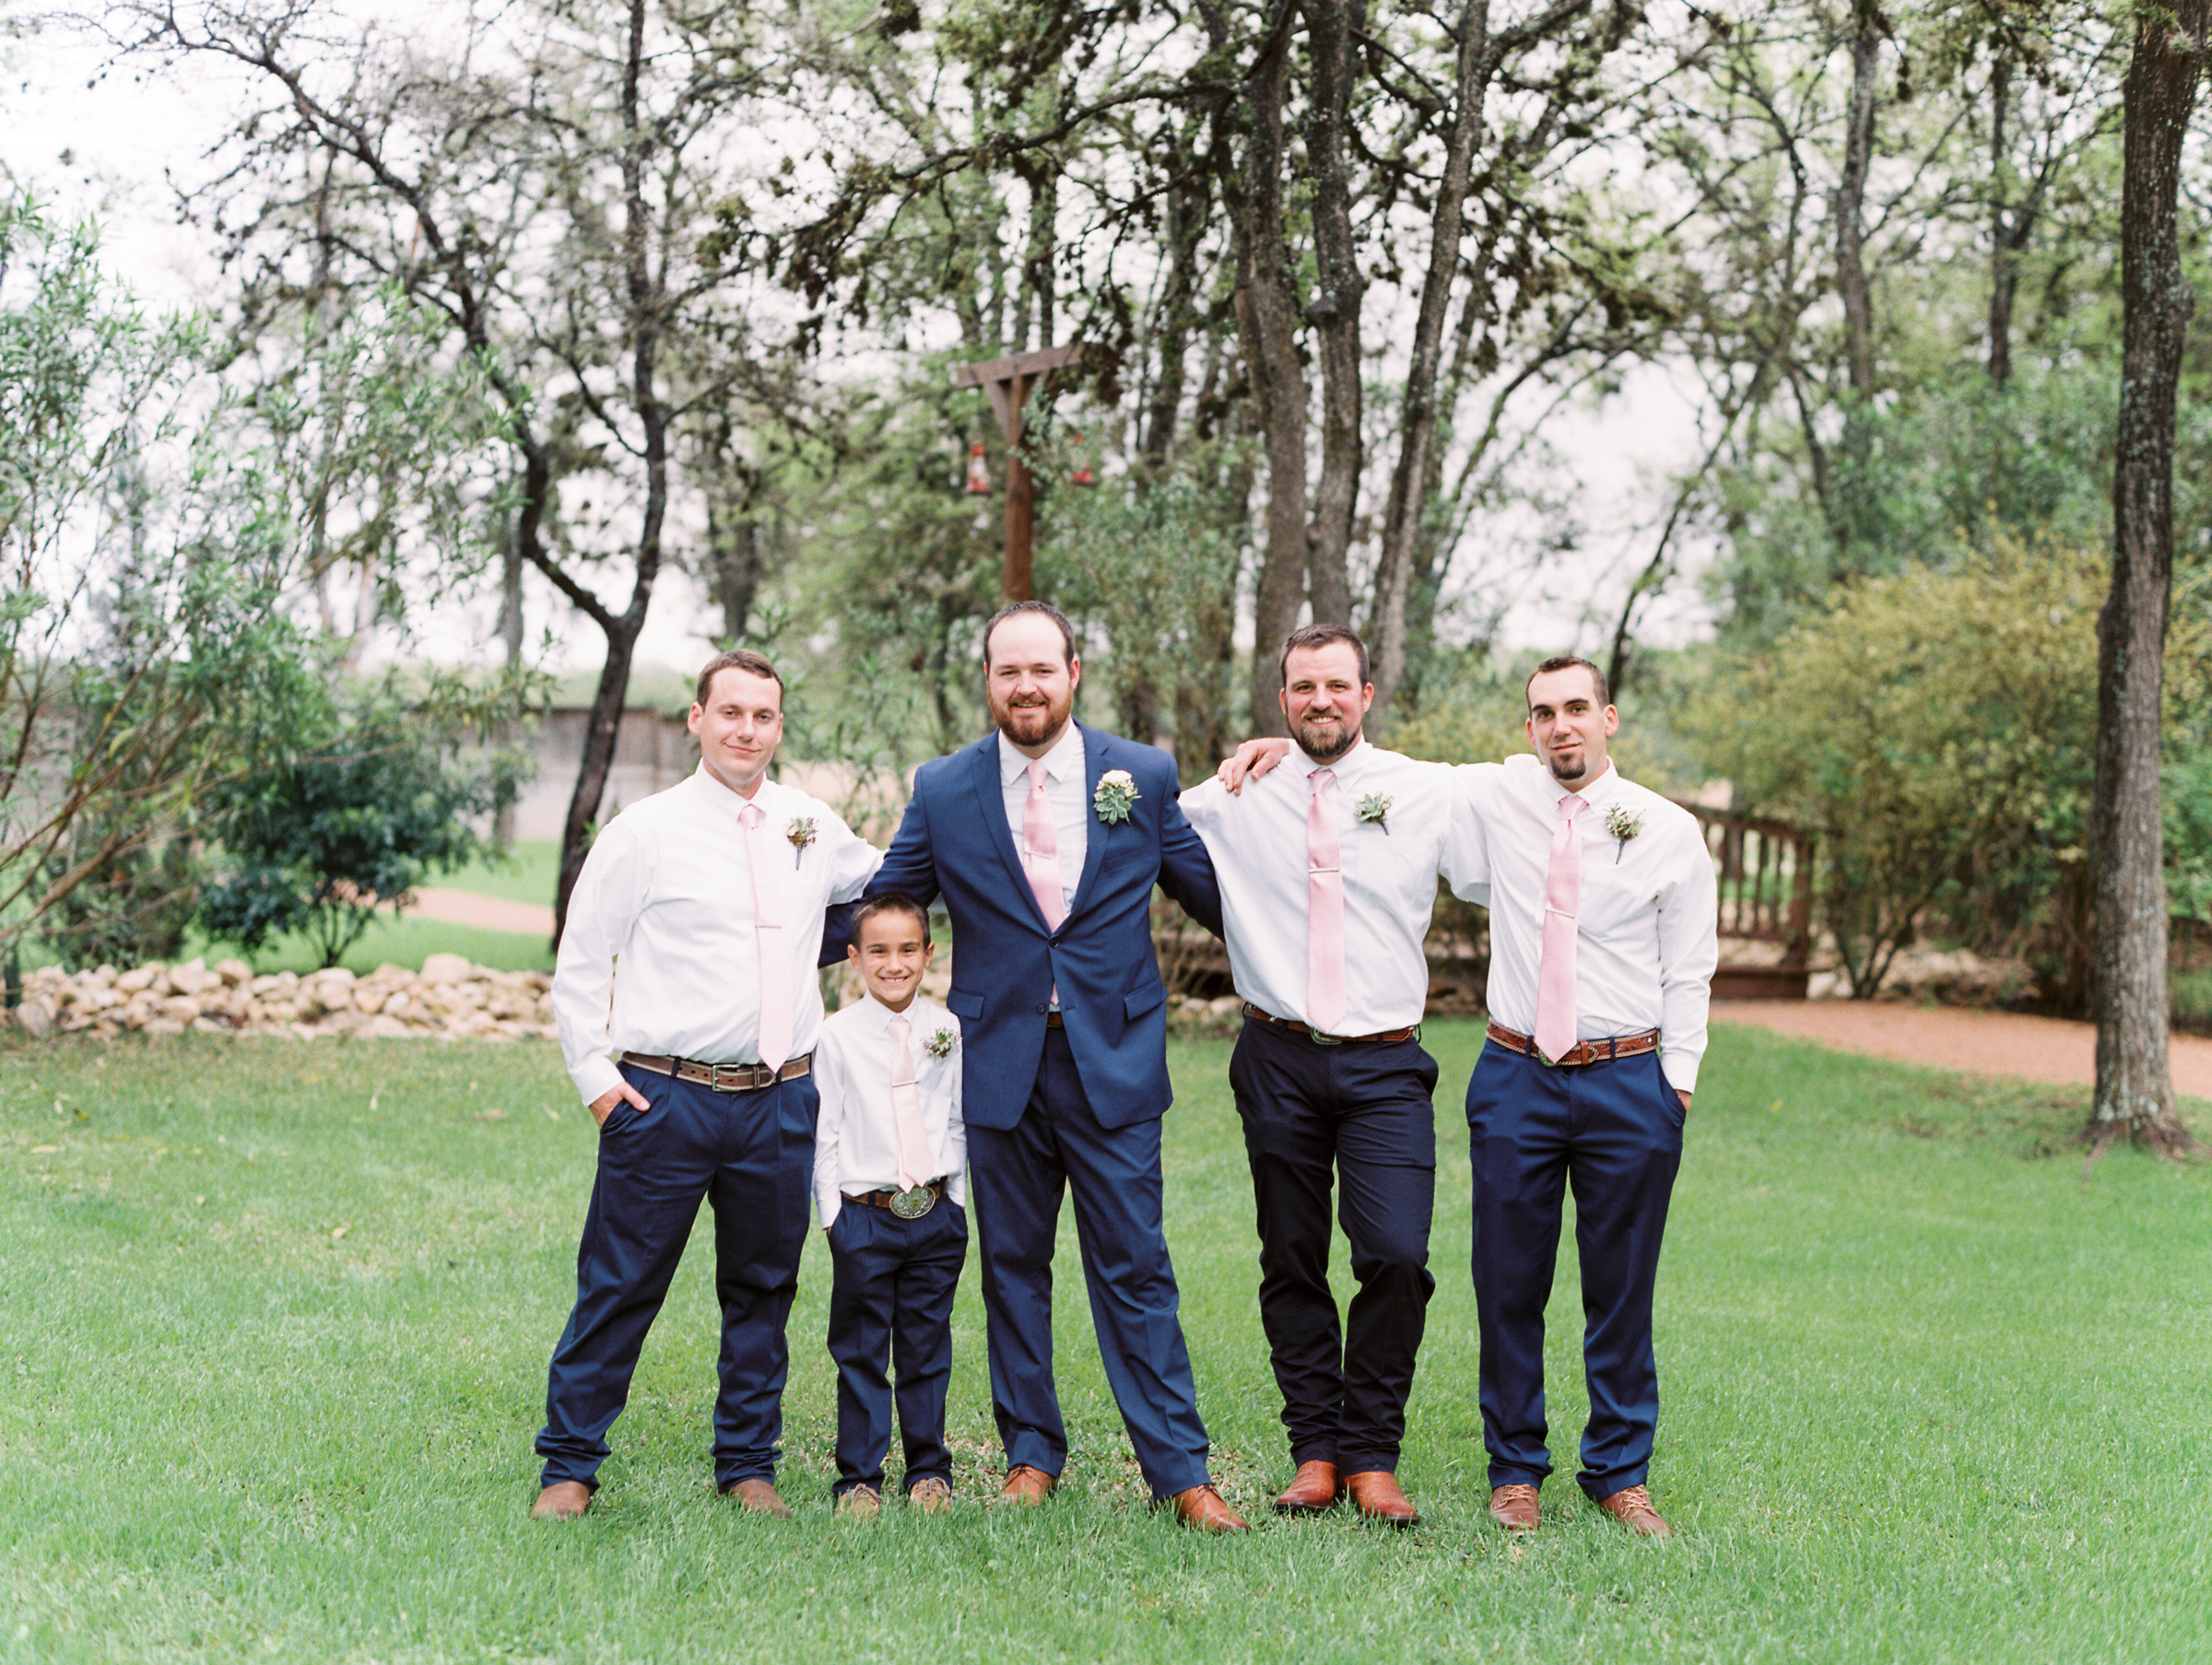 Hill Country Spring Wedding at Red Bud Hall | Austin Wedding Photographer | Film Wedding Photographer | Britni Dean Photography | Rainy Day Wedding Inspiration | navy groomsmen suits